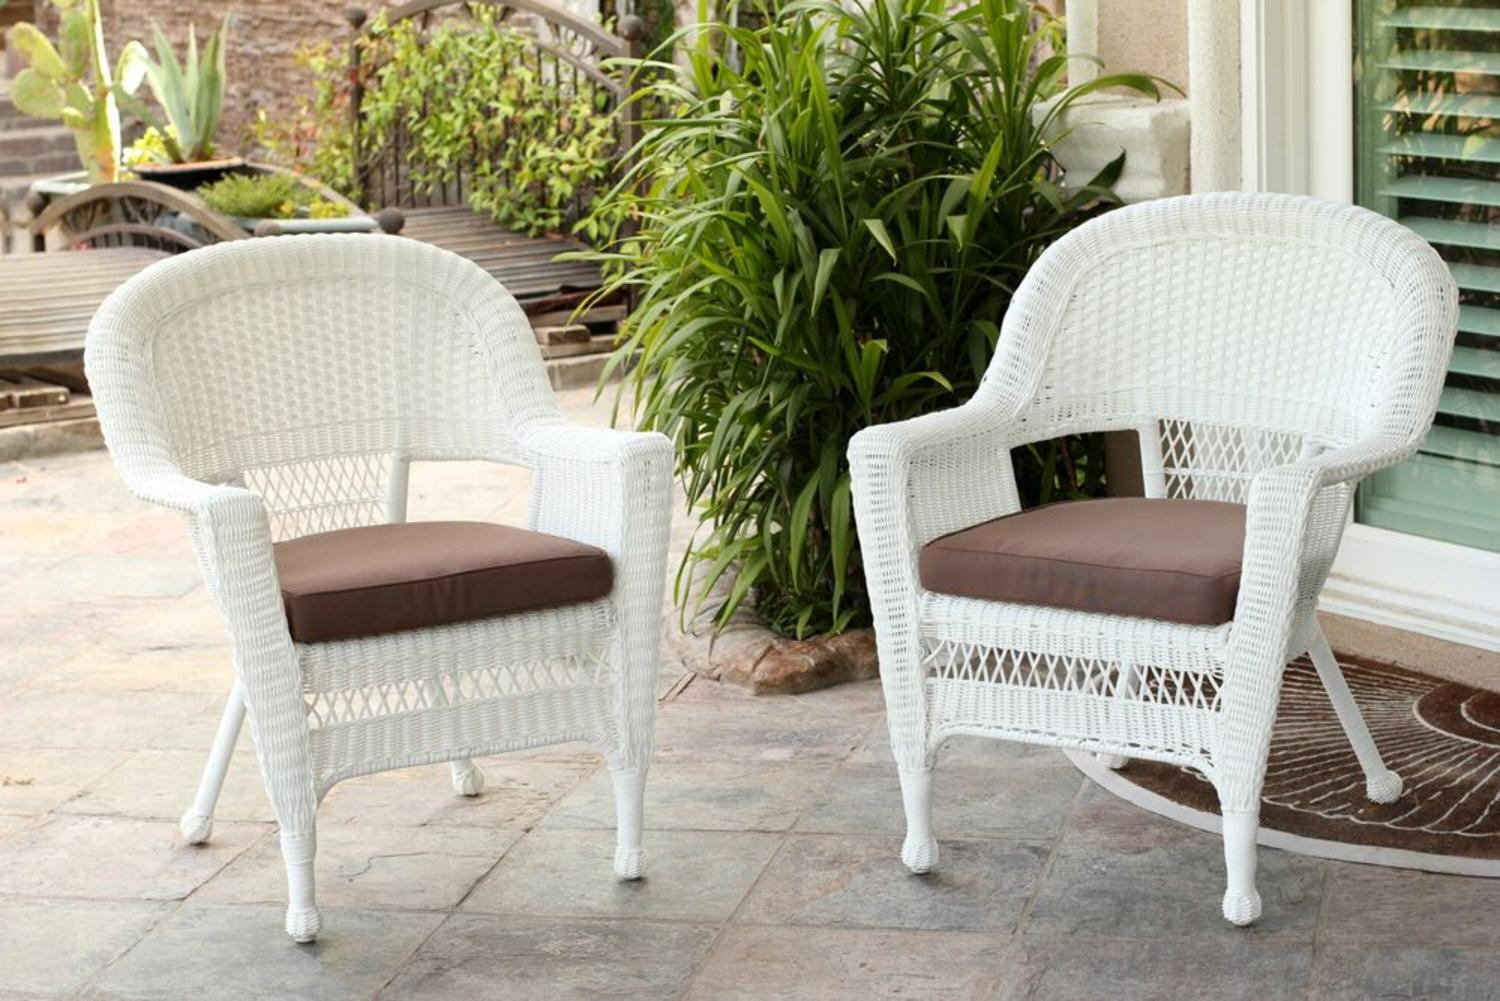 White Plastic Patio Chairs Set Of 4 White Resin Wicker Outdoor Patio Garden Chairs